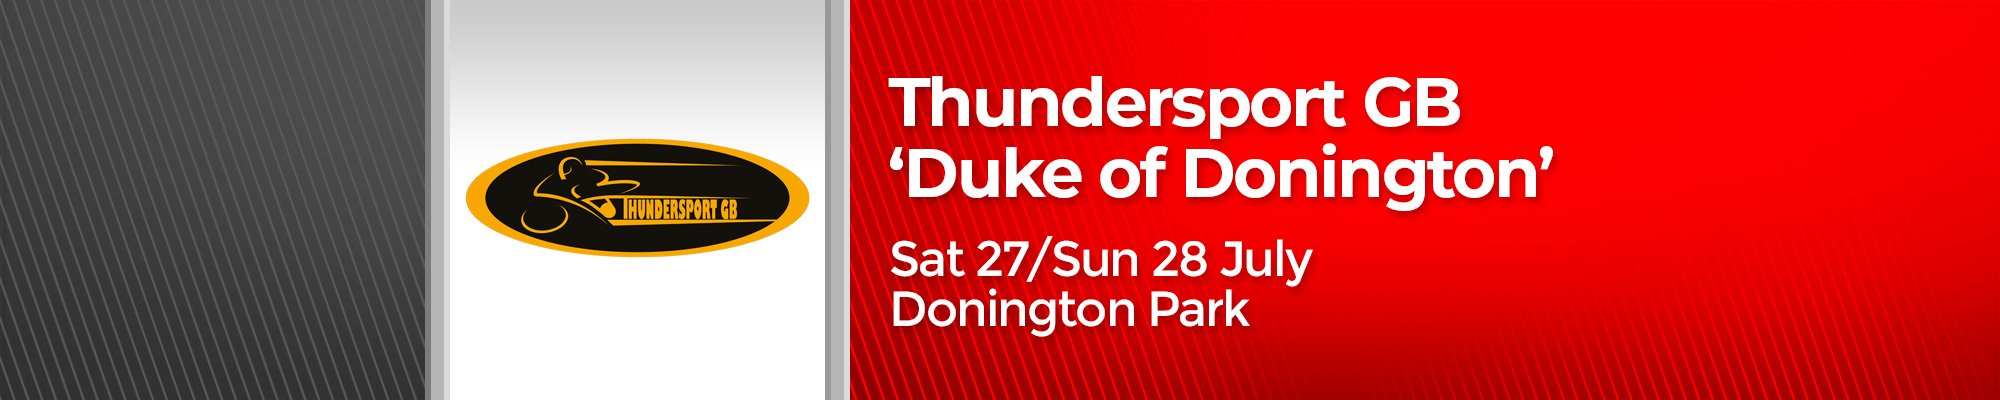 Thundersport GB 'Duke of Donington'